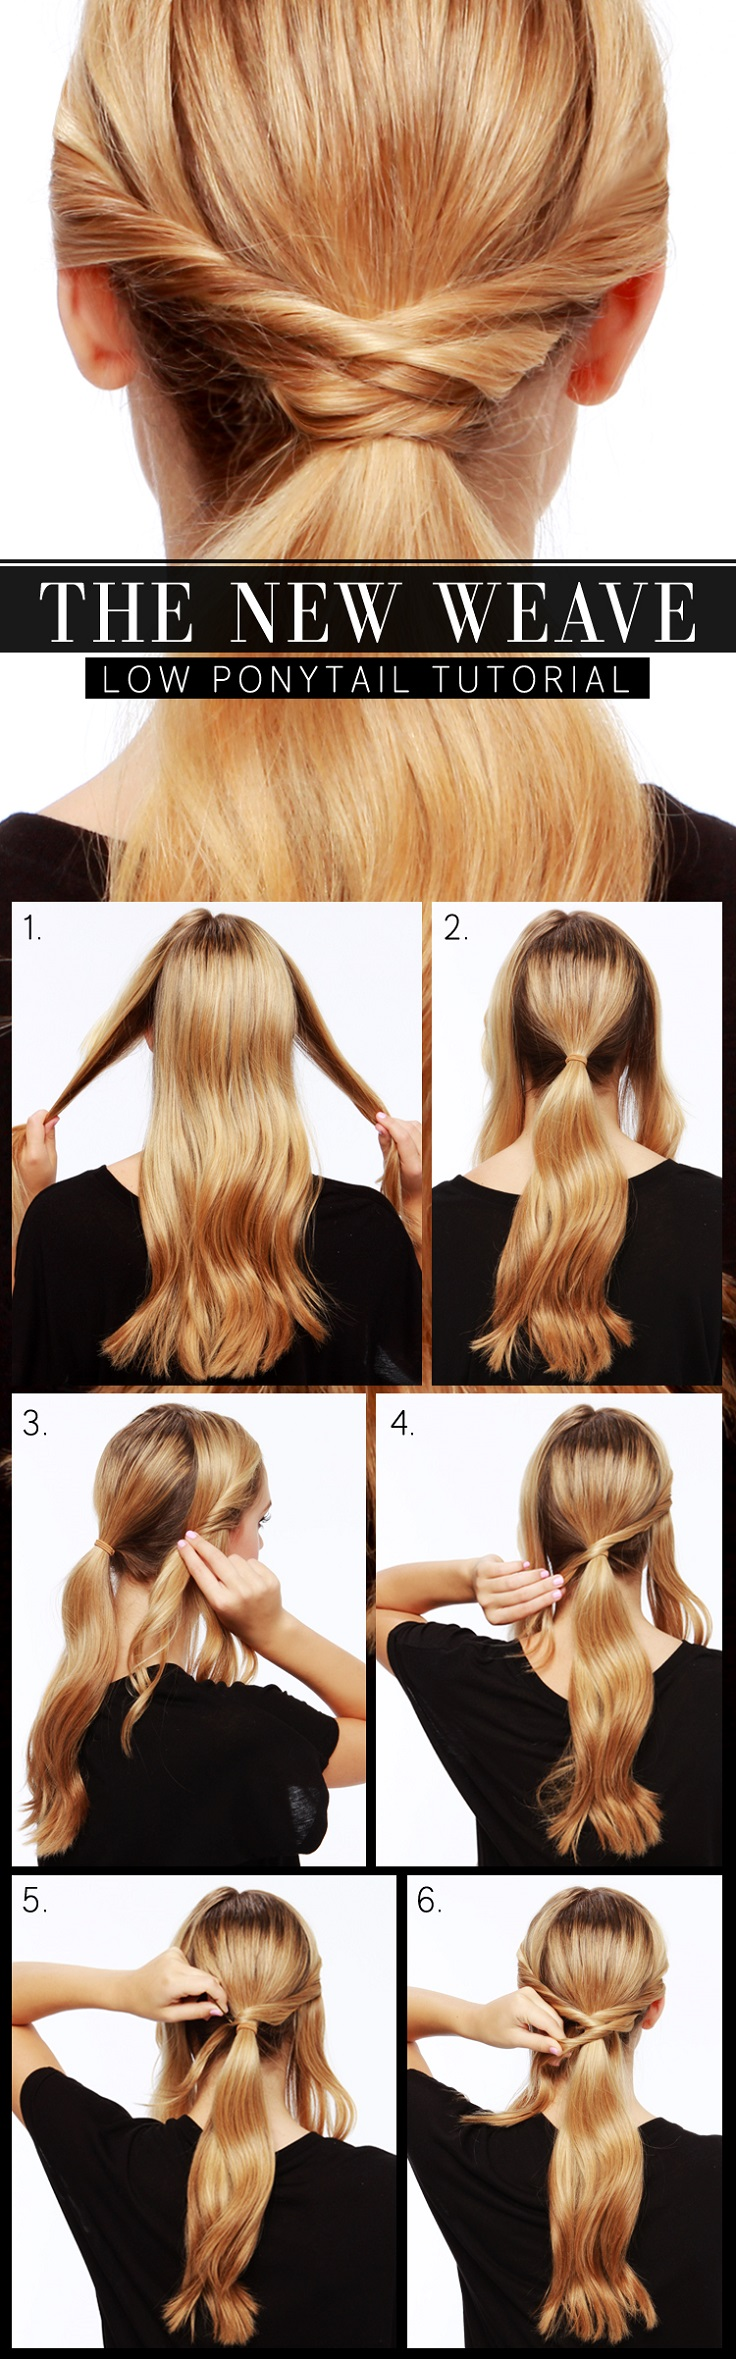 The-New-Weave-Low-Ponytail-Tutorial